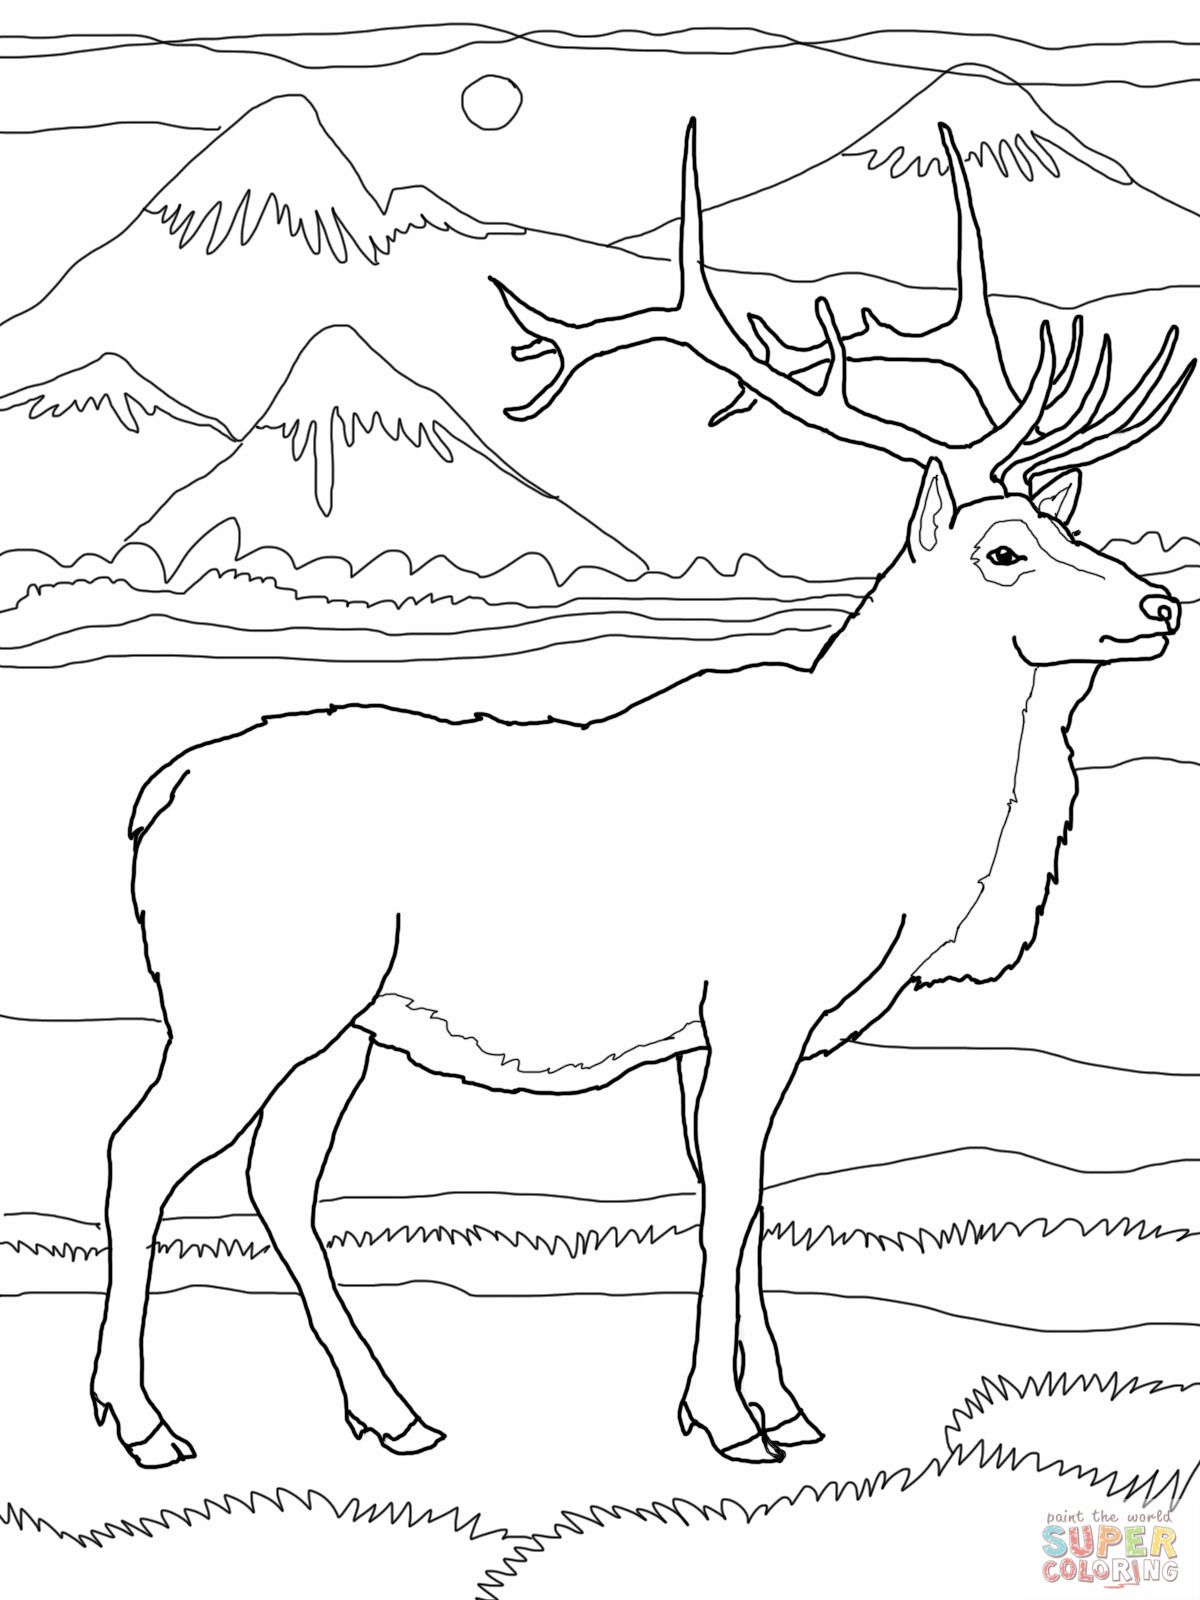 Adult Cute Elk Coloring Page Gallery Images cute elk coloring page annexhub 1000 images about projects to try on pinterest scroll saw gallery images